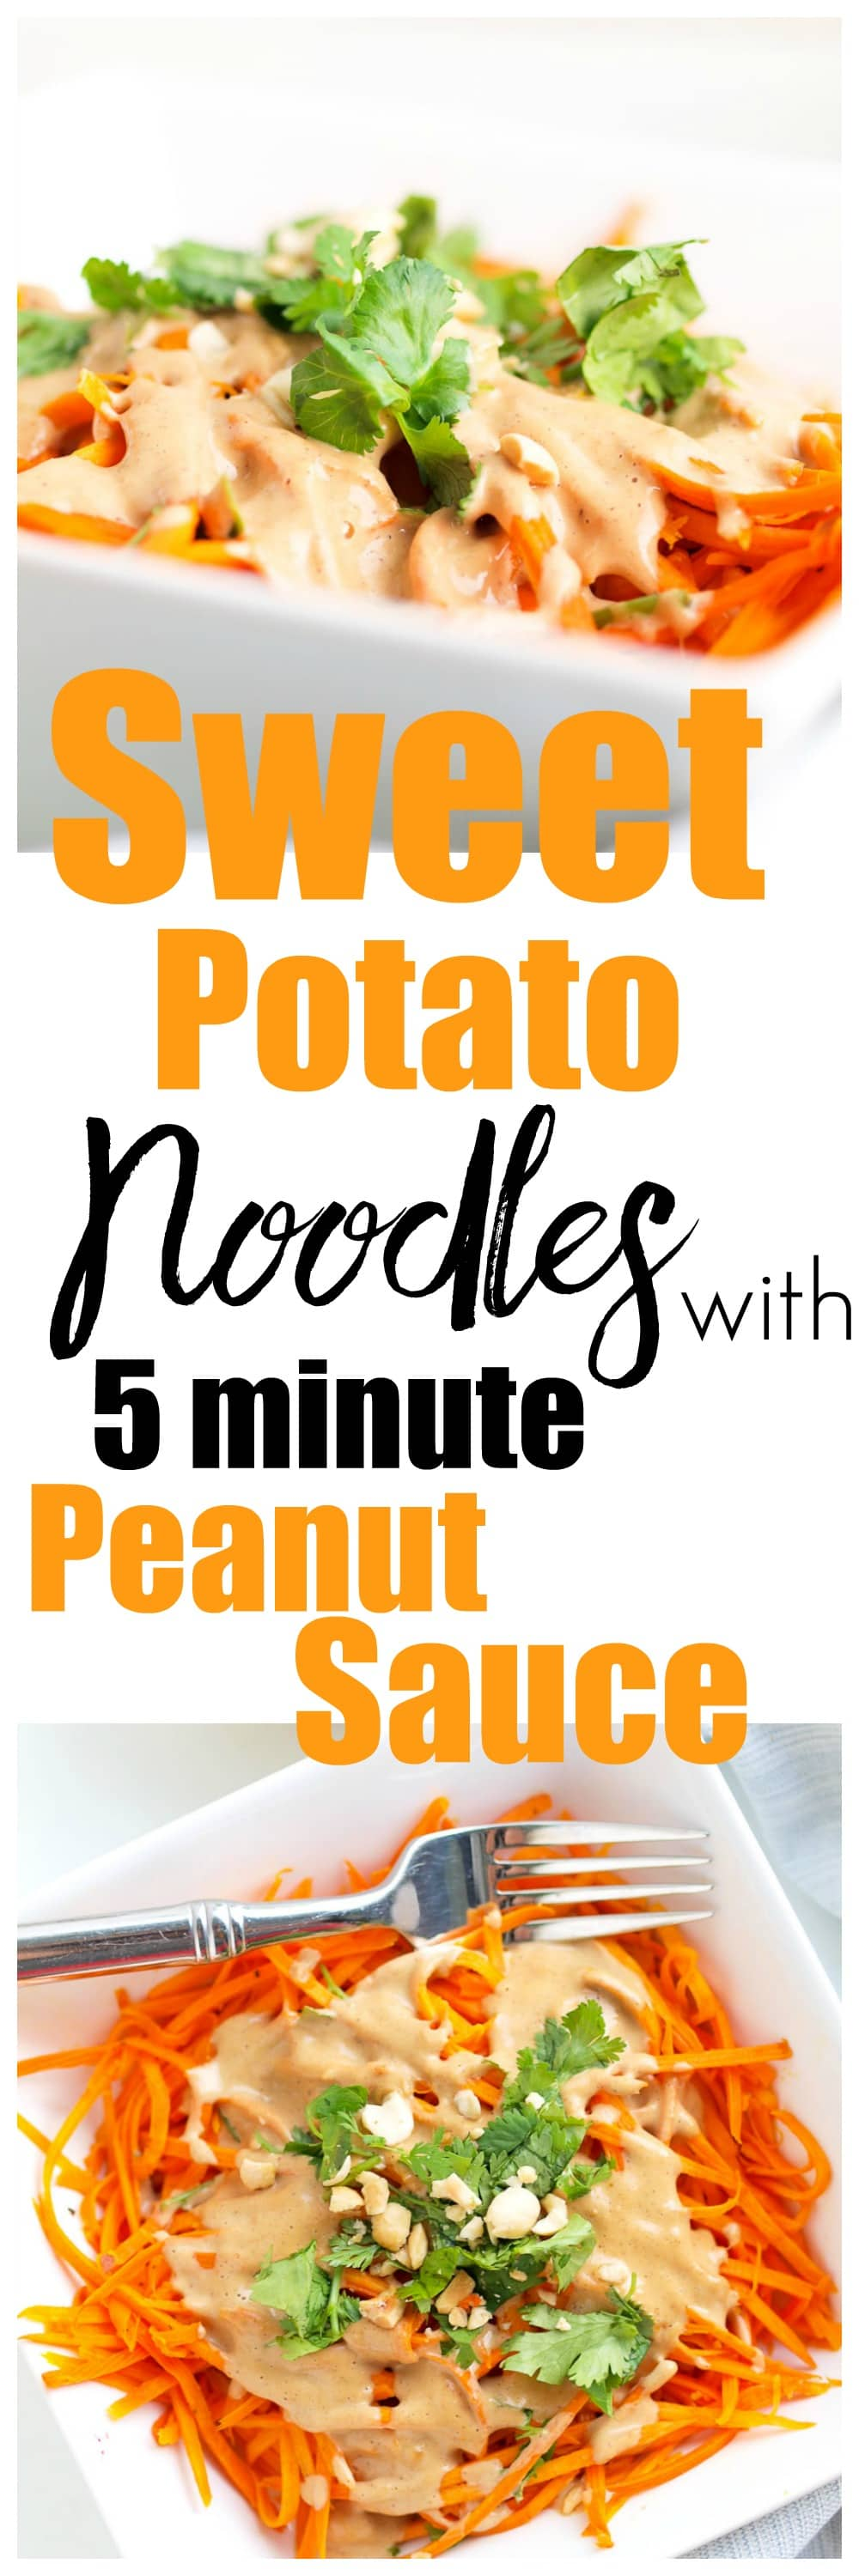 Looking for a quick, easy, and healthy dinner idea? This Sweet Potato Noodles with 5 minute Peanut Sauce recipe takes just 20 minutes and is gluten-free, vegan, and sooo good! Just 350 calories per serving.